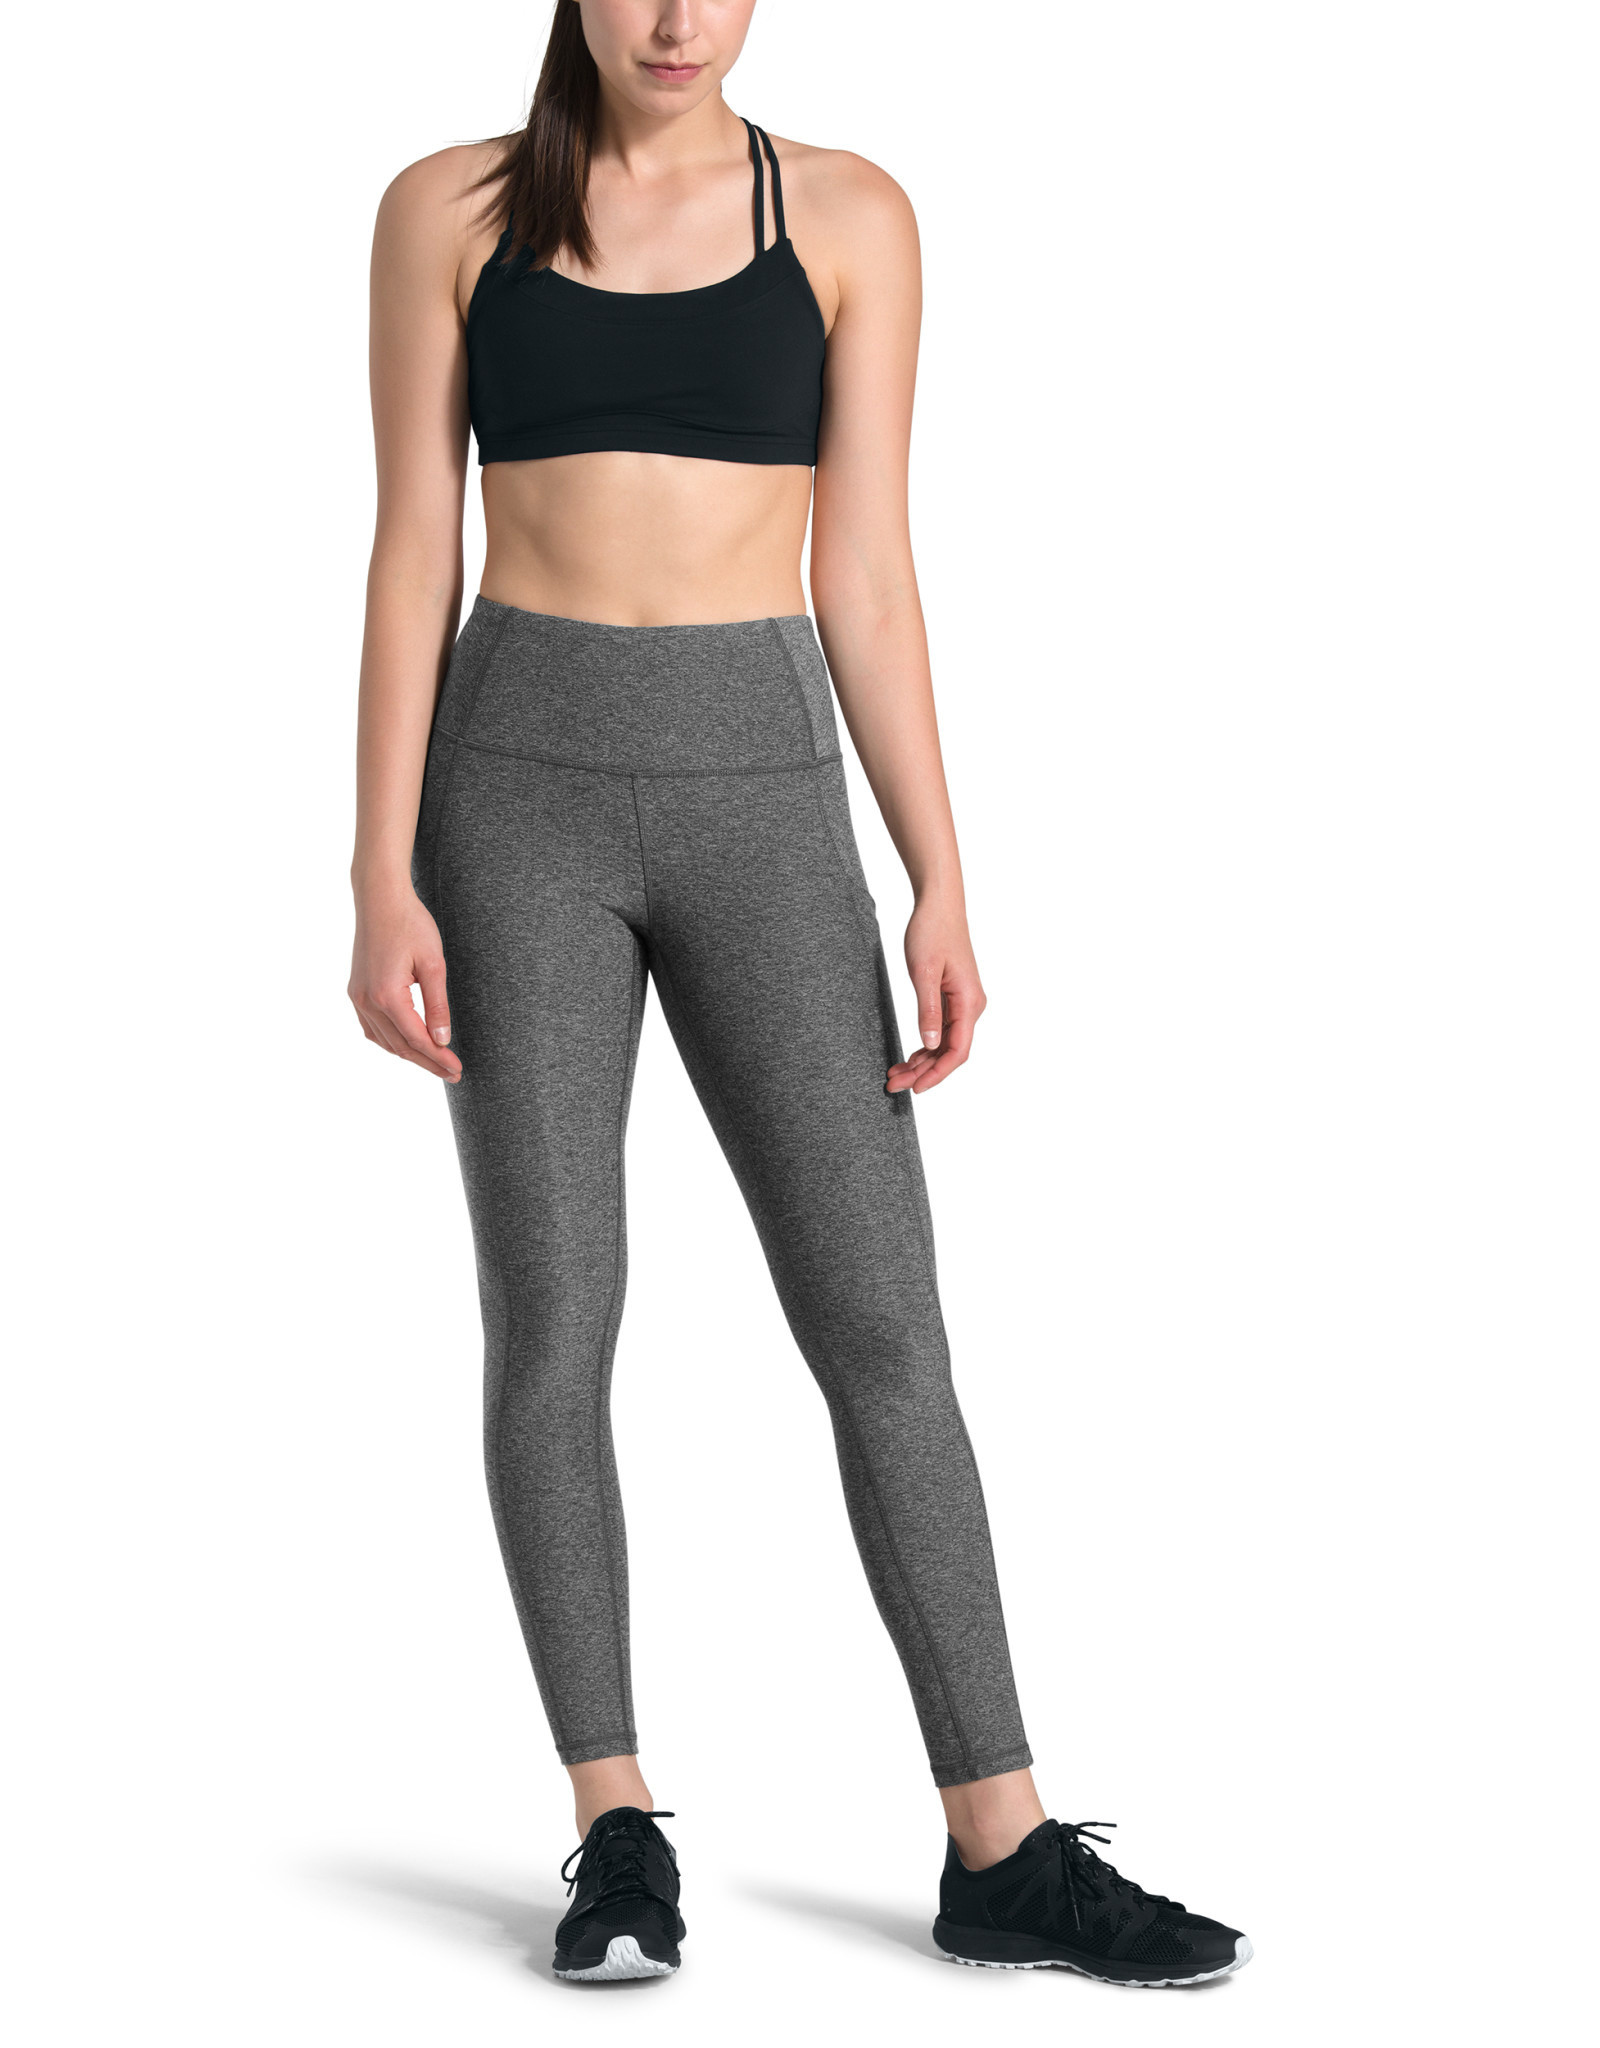 The North Face Women's Motivation High-Rise 7/8 Pocket Tight -S2021